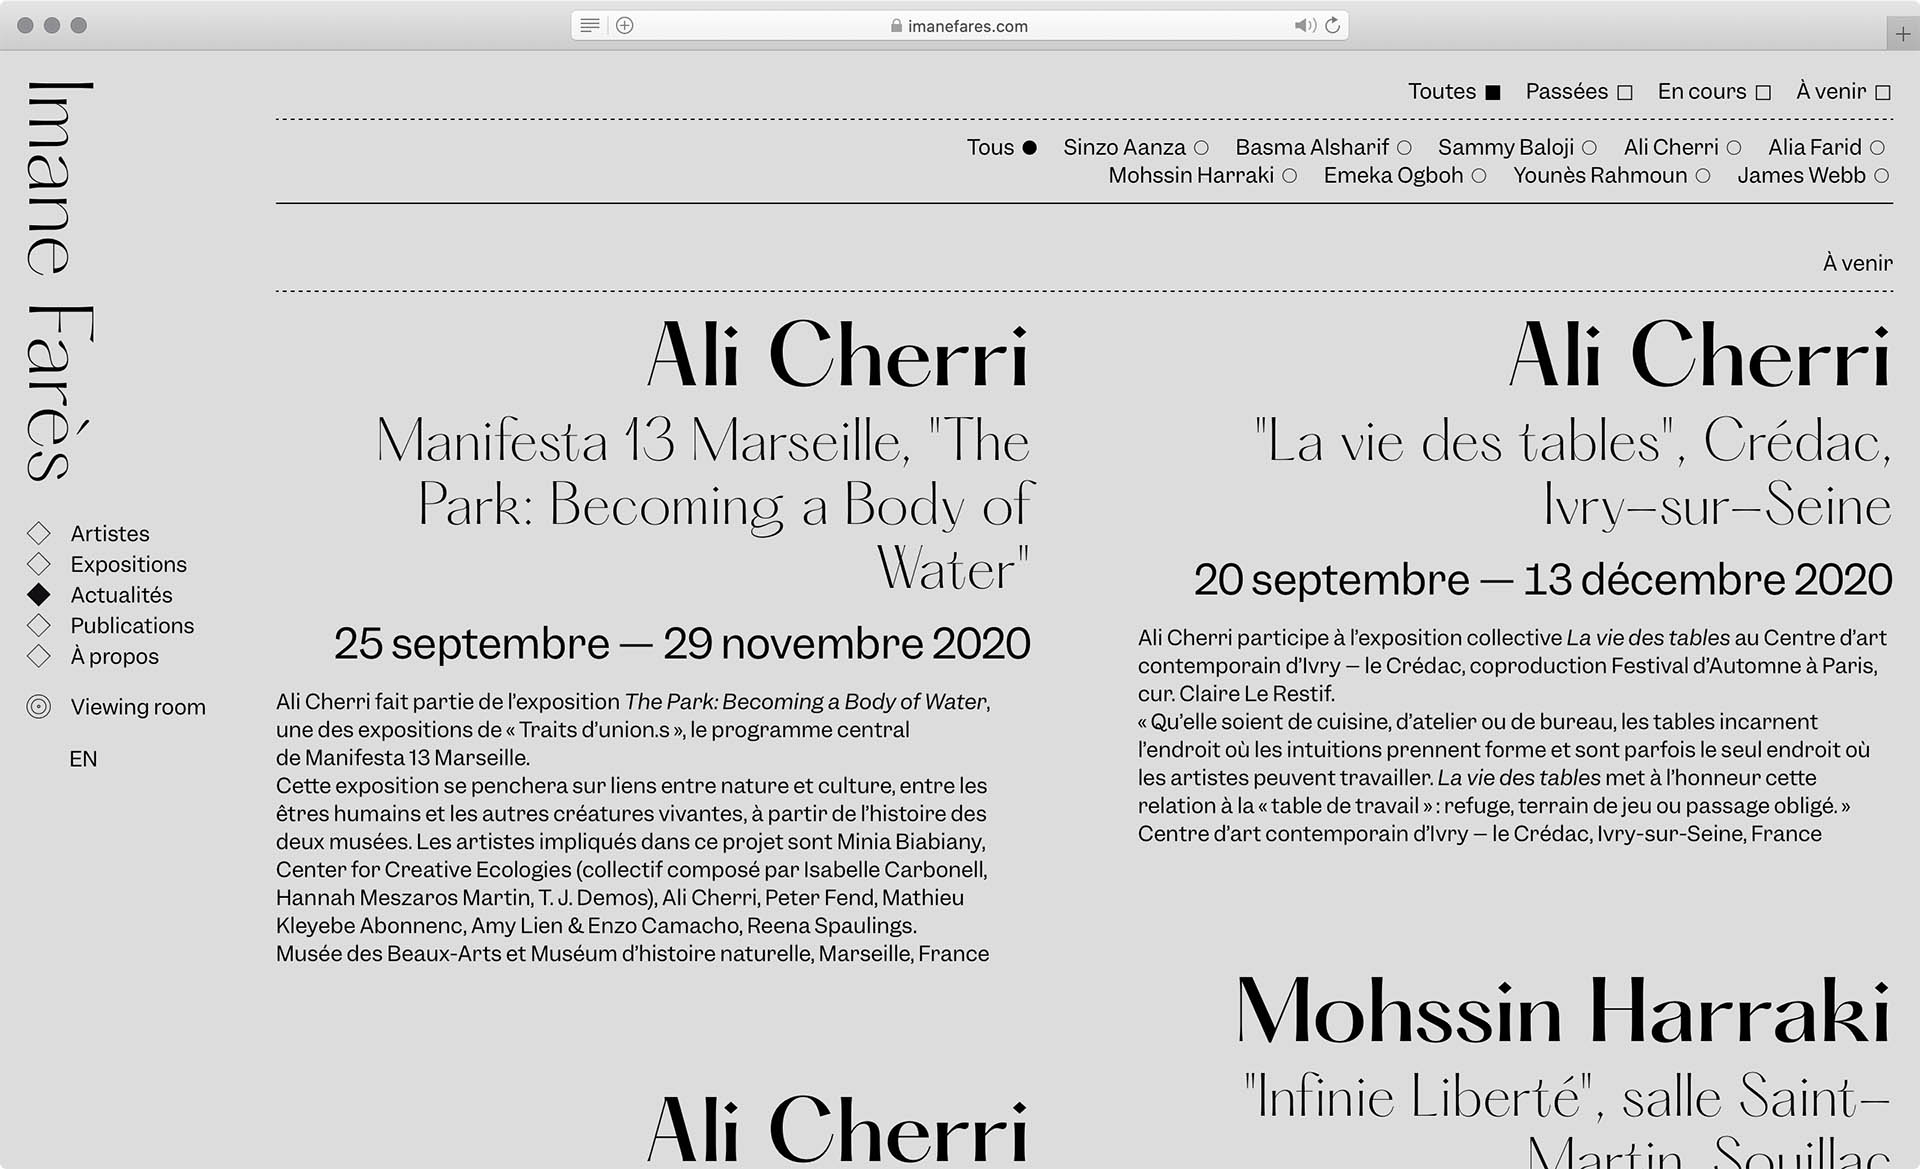 Cyril Makhoul - (link: https://imanefares.com/ text: Galerie Imane Farès) — Visual Identity and webdesign.